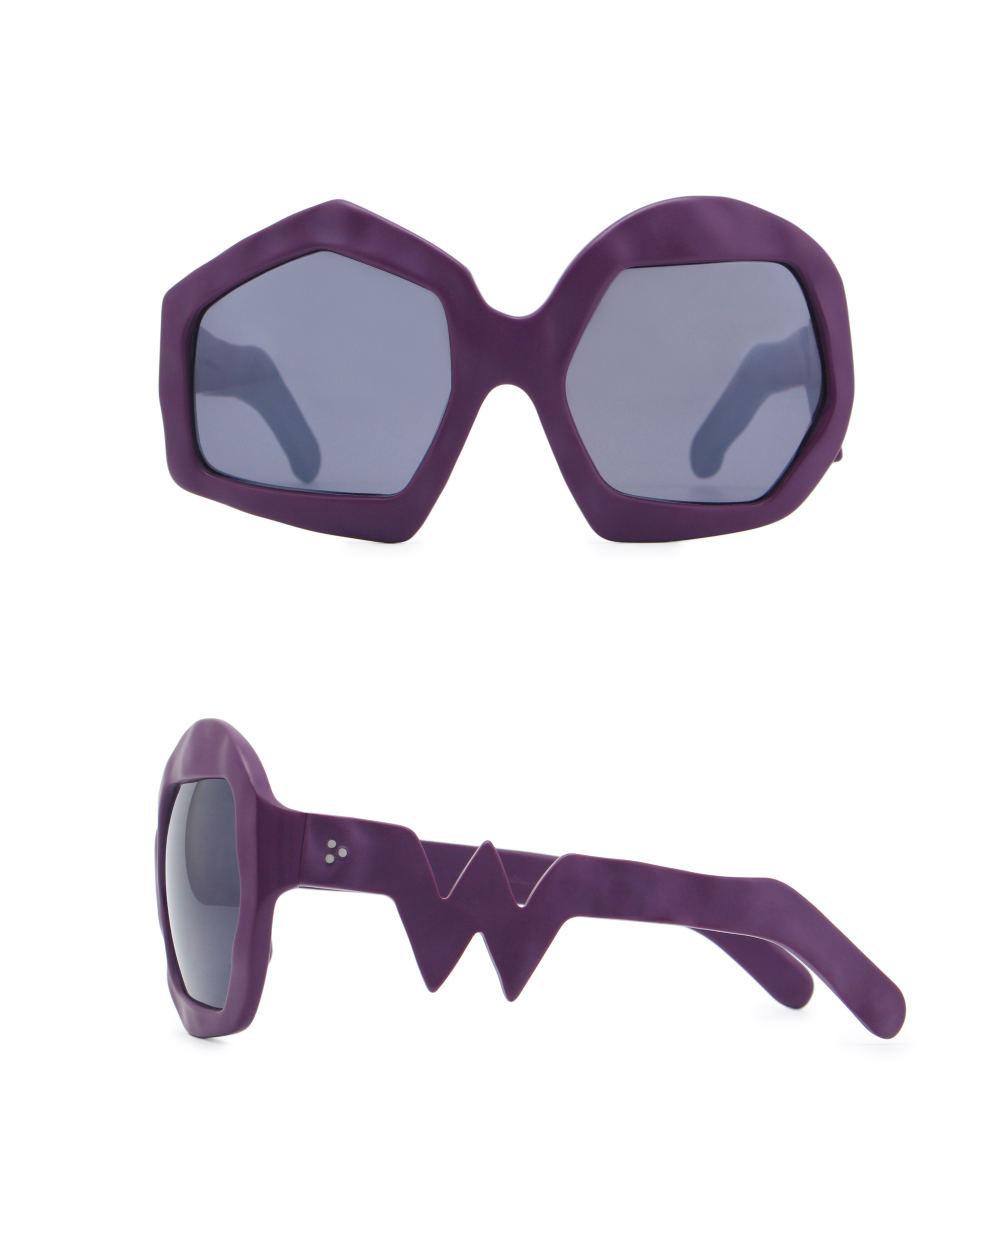 Thunder Sunglasses. Purple